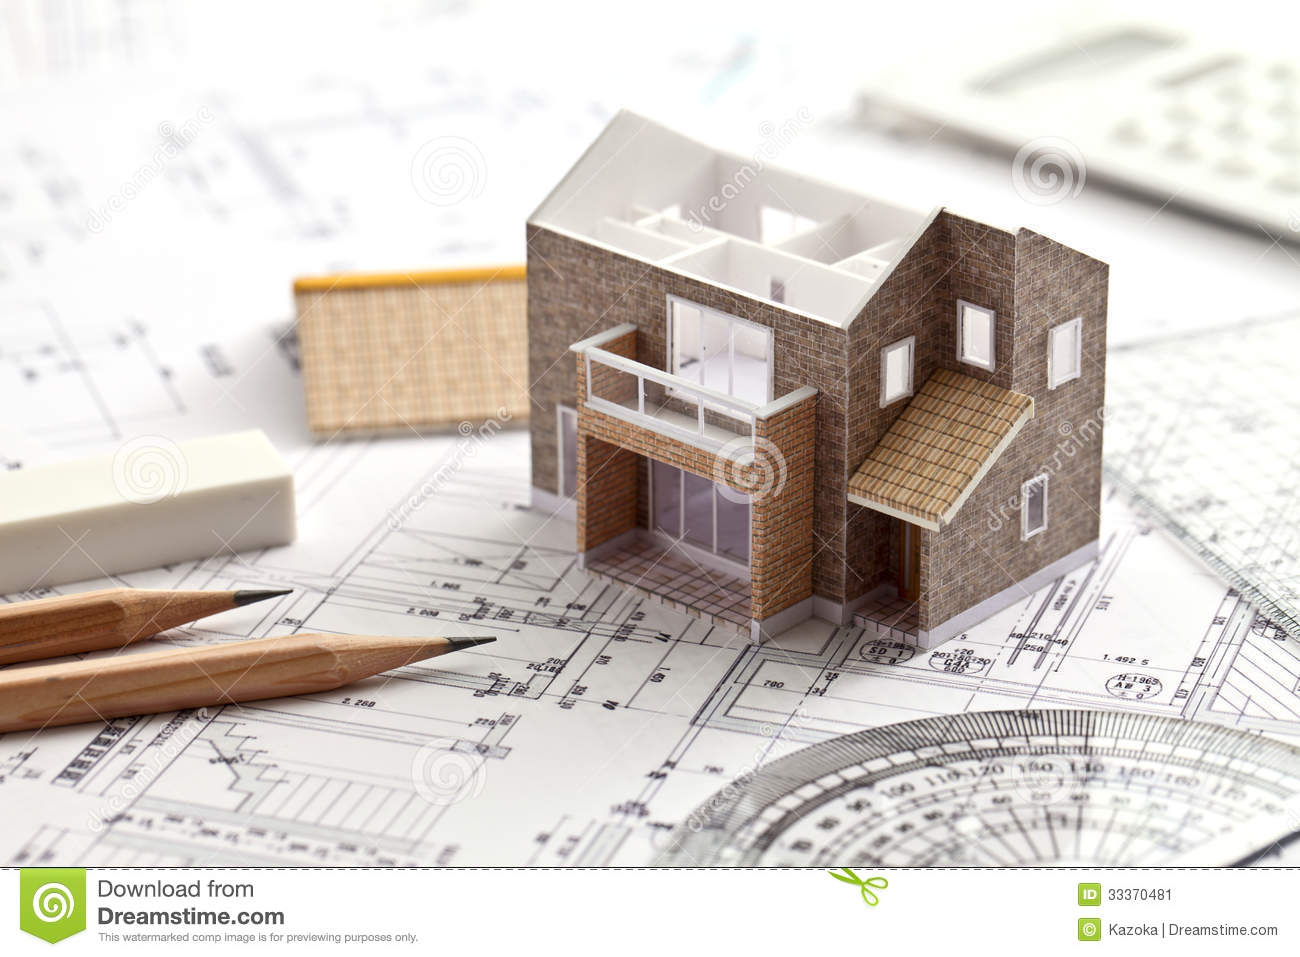 House design drawing stock image image 33370481 for Design your own building